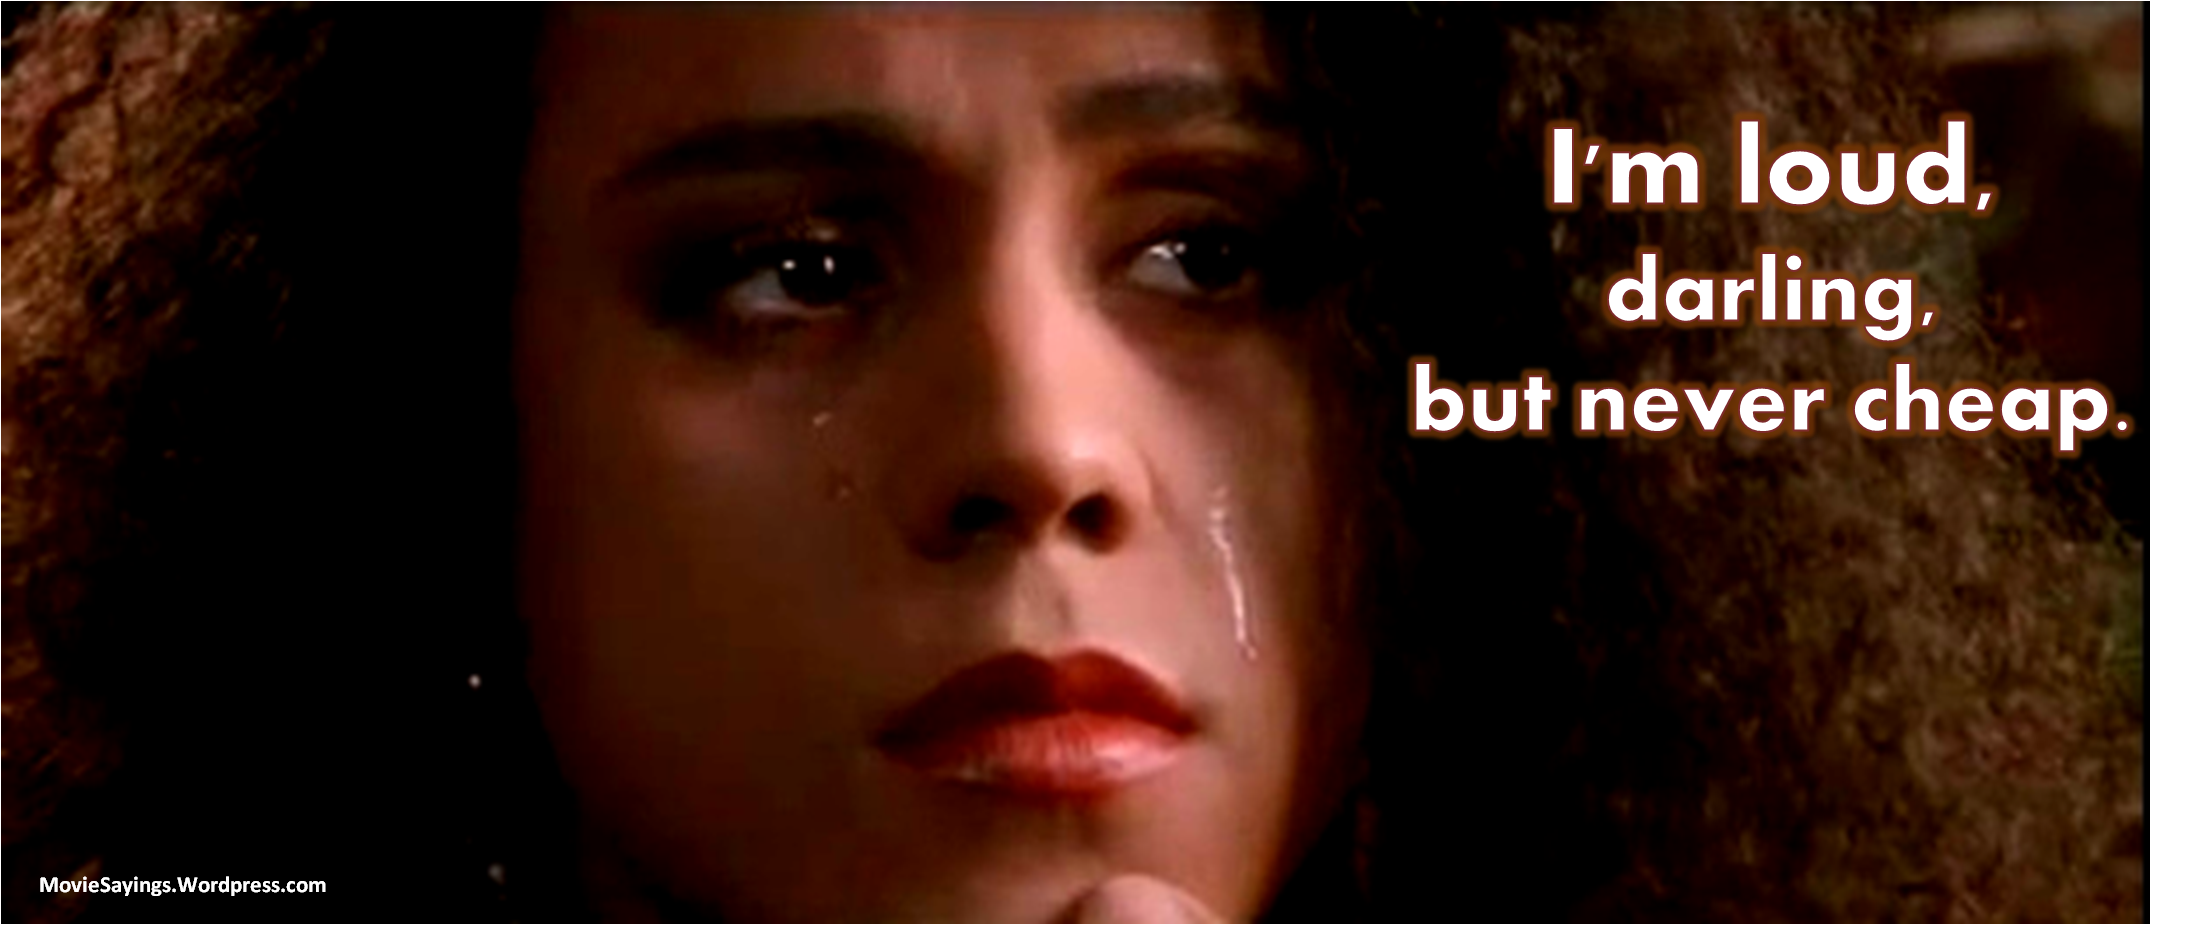 jaye davidson moviesjaye davidson facebook, jaye davidson tumblr, jaye davidson 2017, jaye davidson ra, jaye davidson pictures, jaye davidson images, jaye davidson movies, jaye davidson oscar, jaye davidson height, jaye davidson 2016, jaye davidson instagram, jaye davidson photos, jaye davidson crying game scene, jaye davidson actor, jaye davidson today, jaye davidson, jaye davidson now, jaye davidson 2015, jaye davidson 2014, jaye davidson stargate